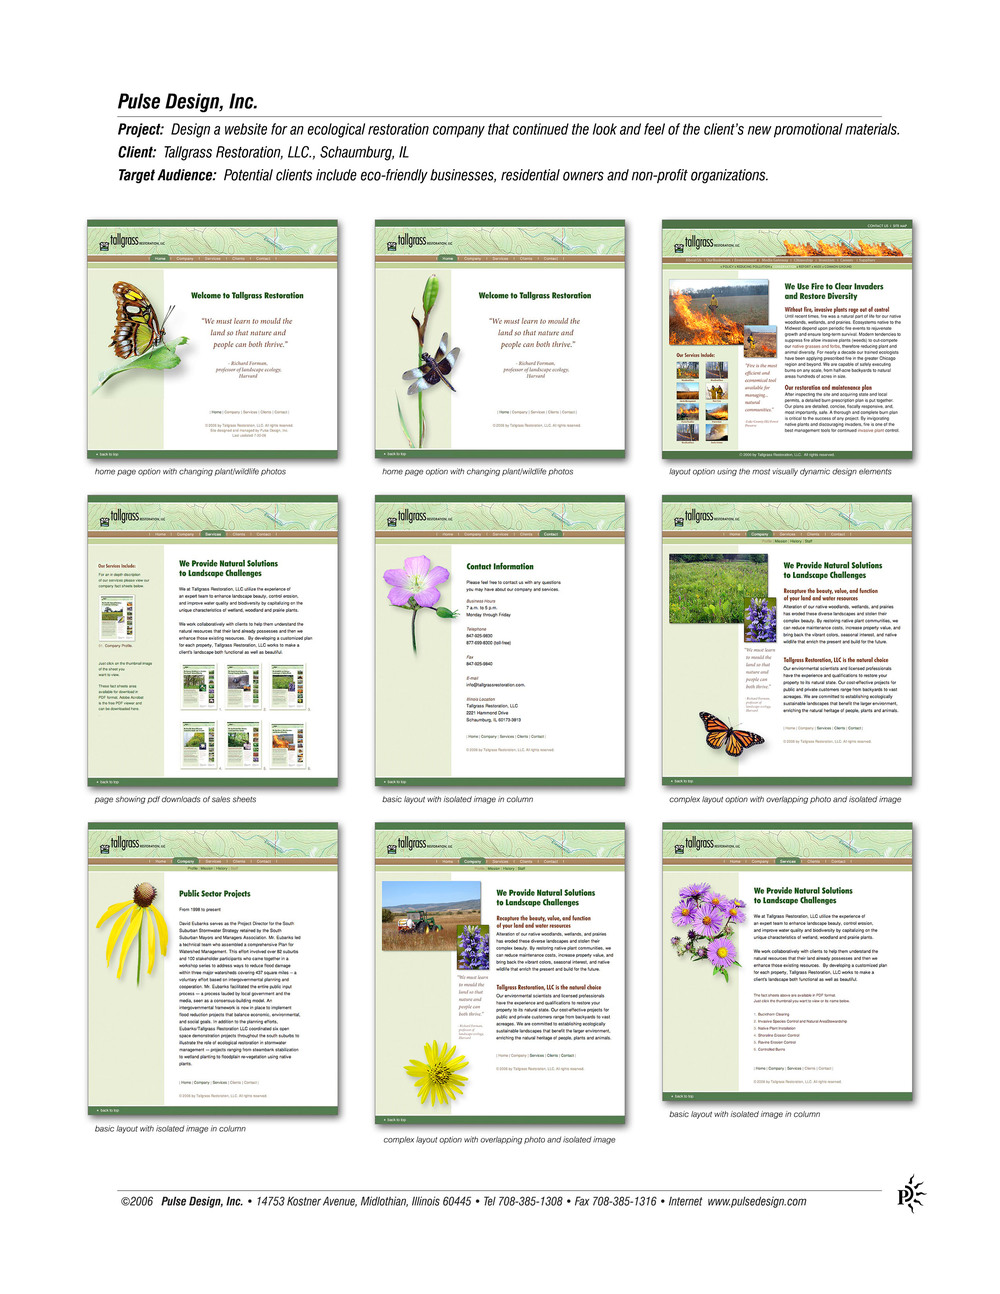 Tallgrass-Website-Pulse-Design-Inc.jpg